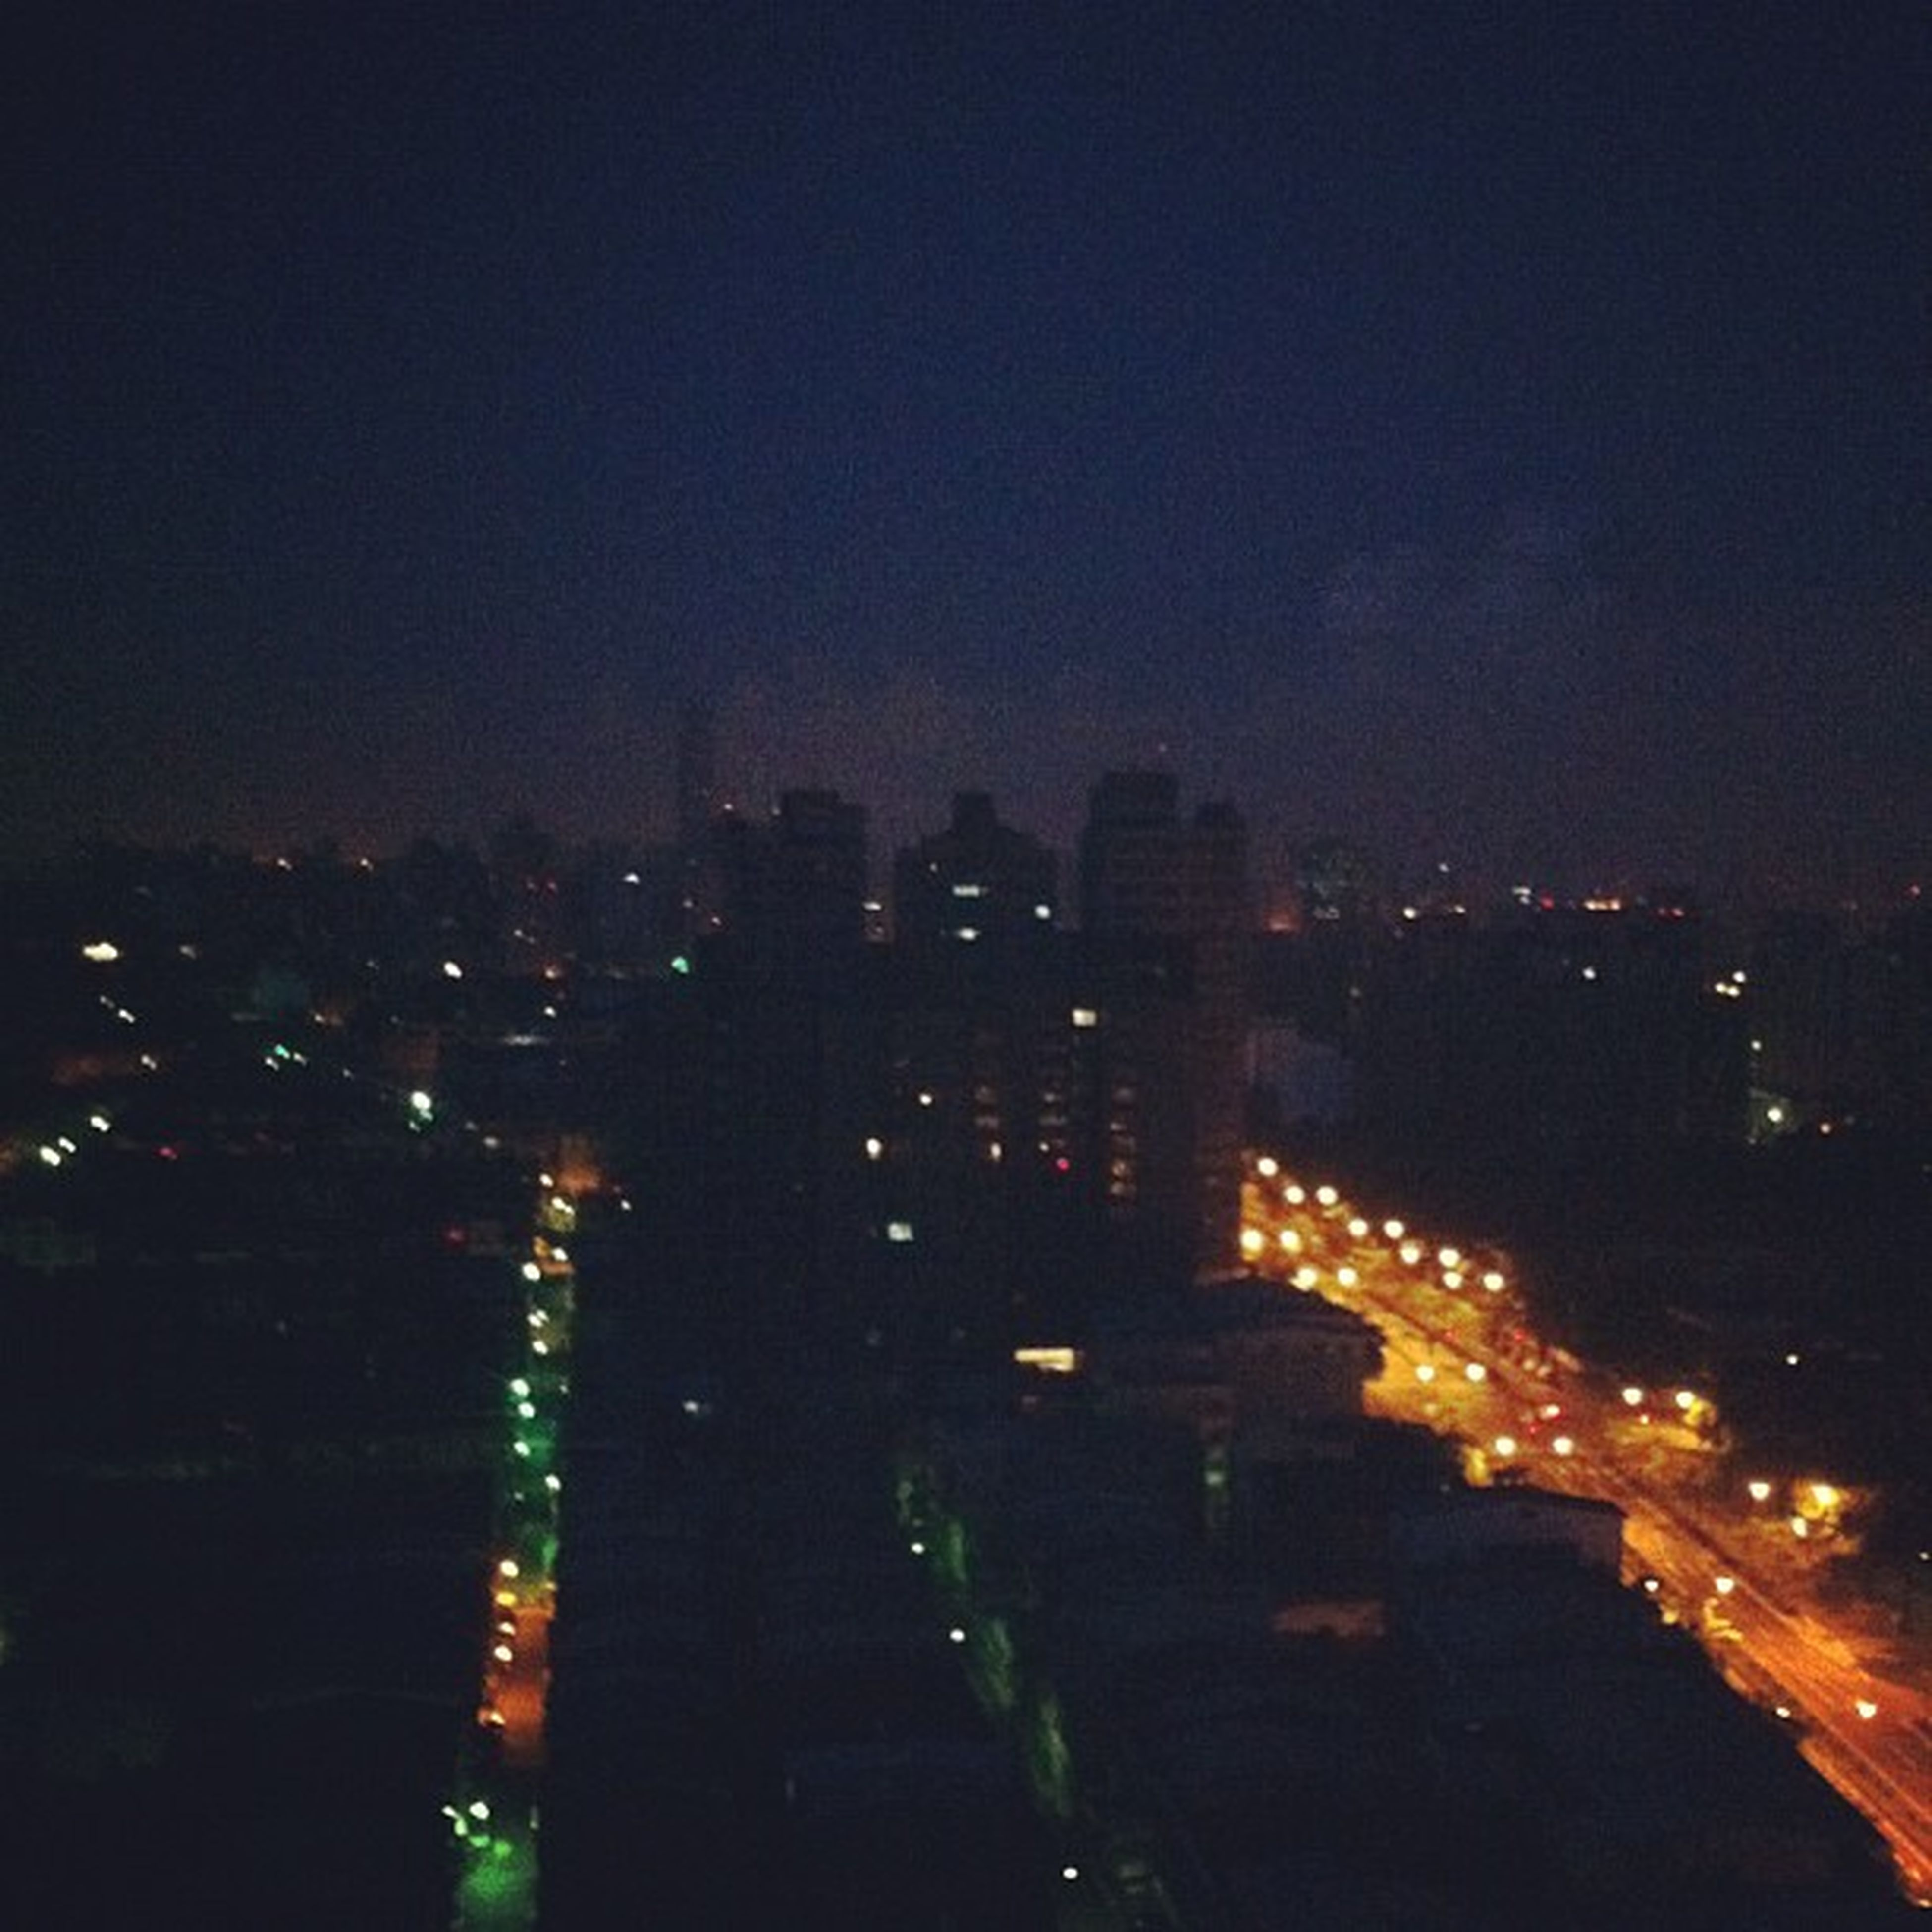 illuminated, night, city, cityscape, building exterior, architecture, built structure, skyscraper, crowded, sky, modern, tall - high, tower, high angle view, city life, office building, capital cities, residential district, urban skyline, copy space